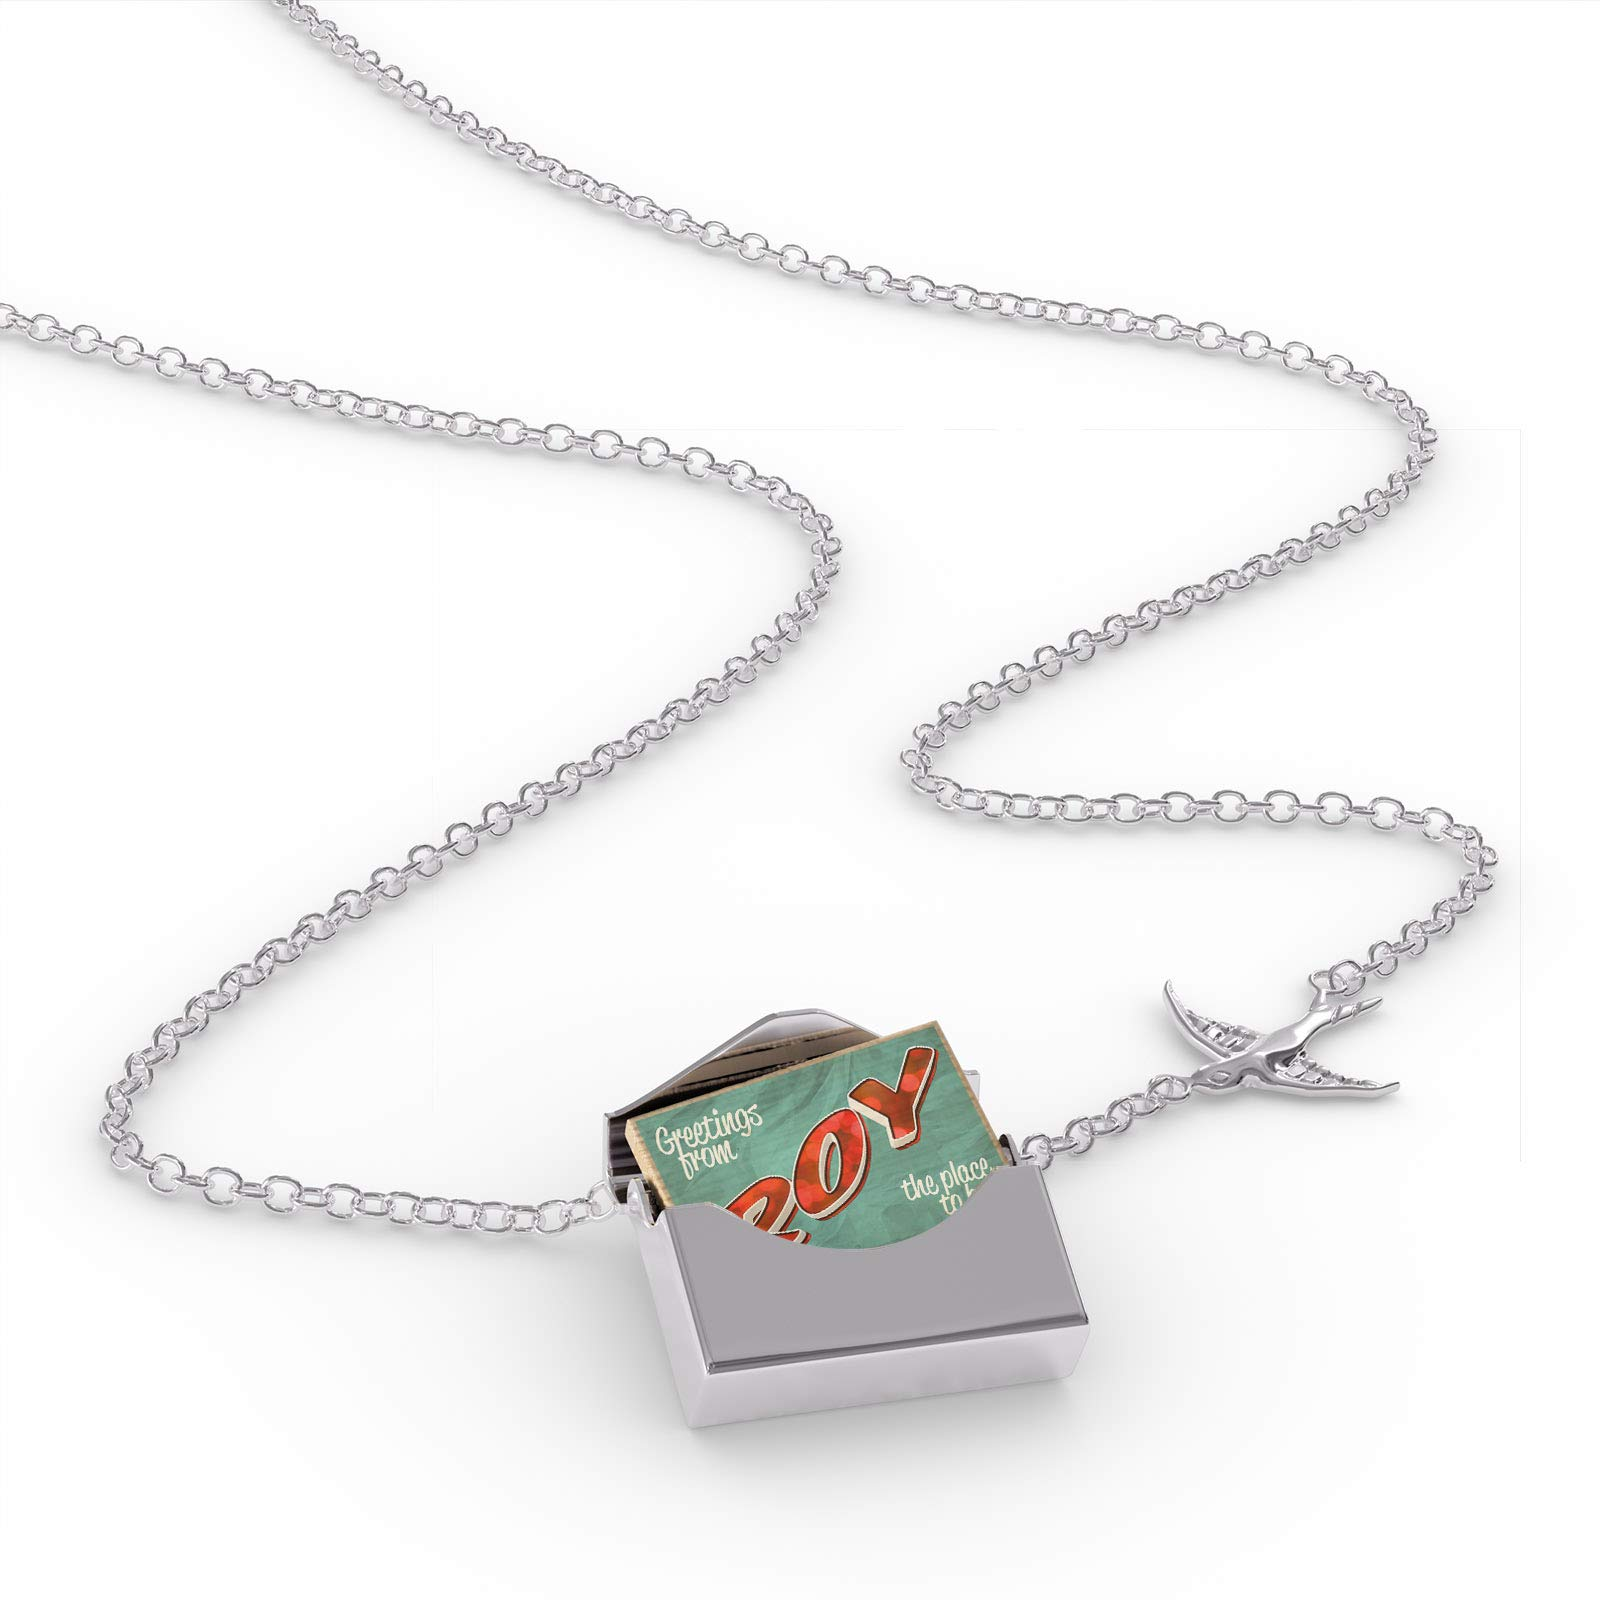 NEONBLOND Locket Necklace Greetings from Roy, Vintage Postcard in a Silver Envelope